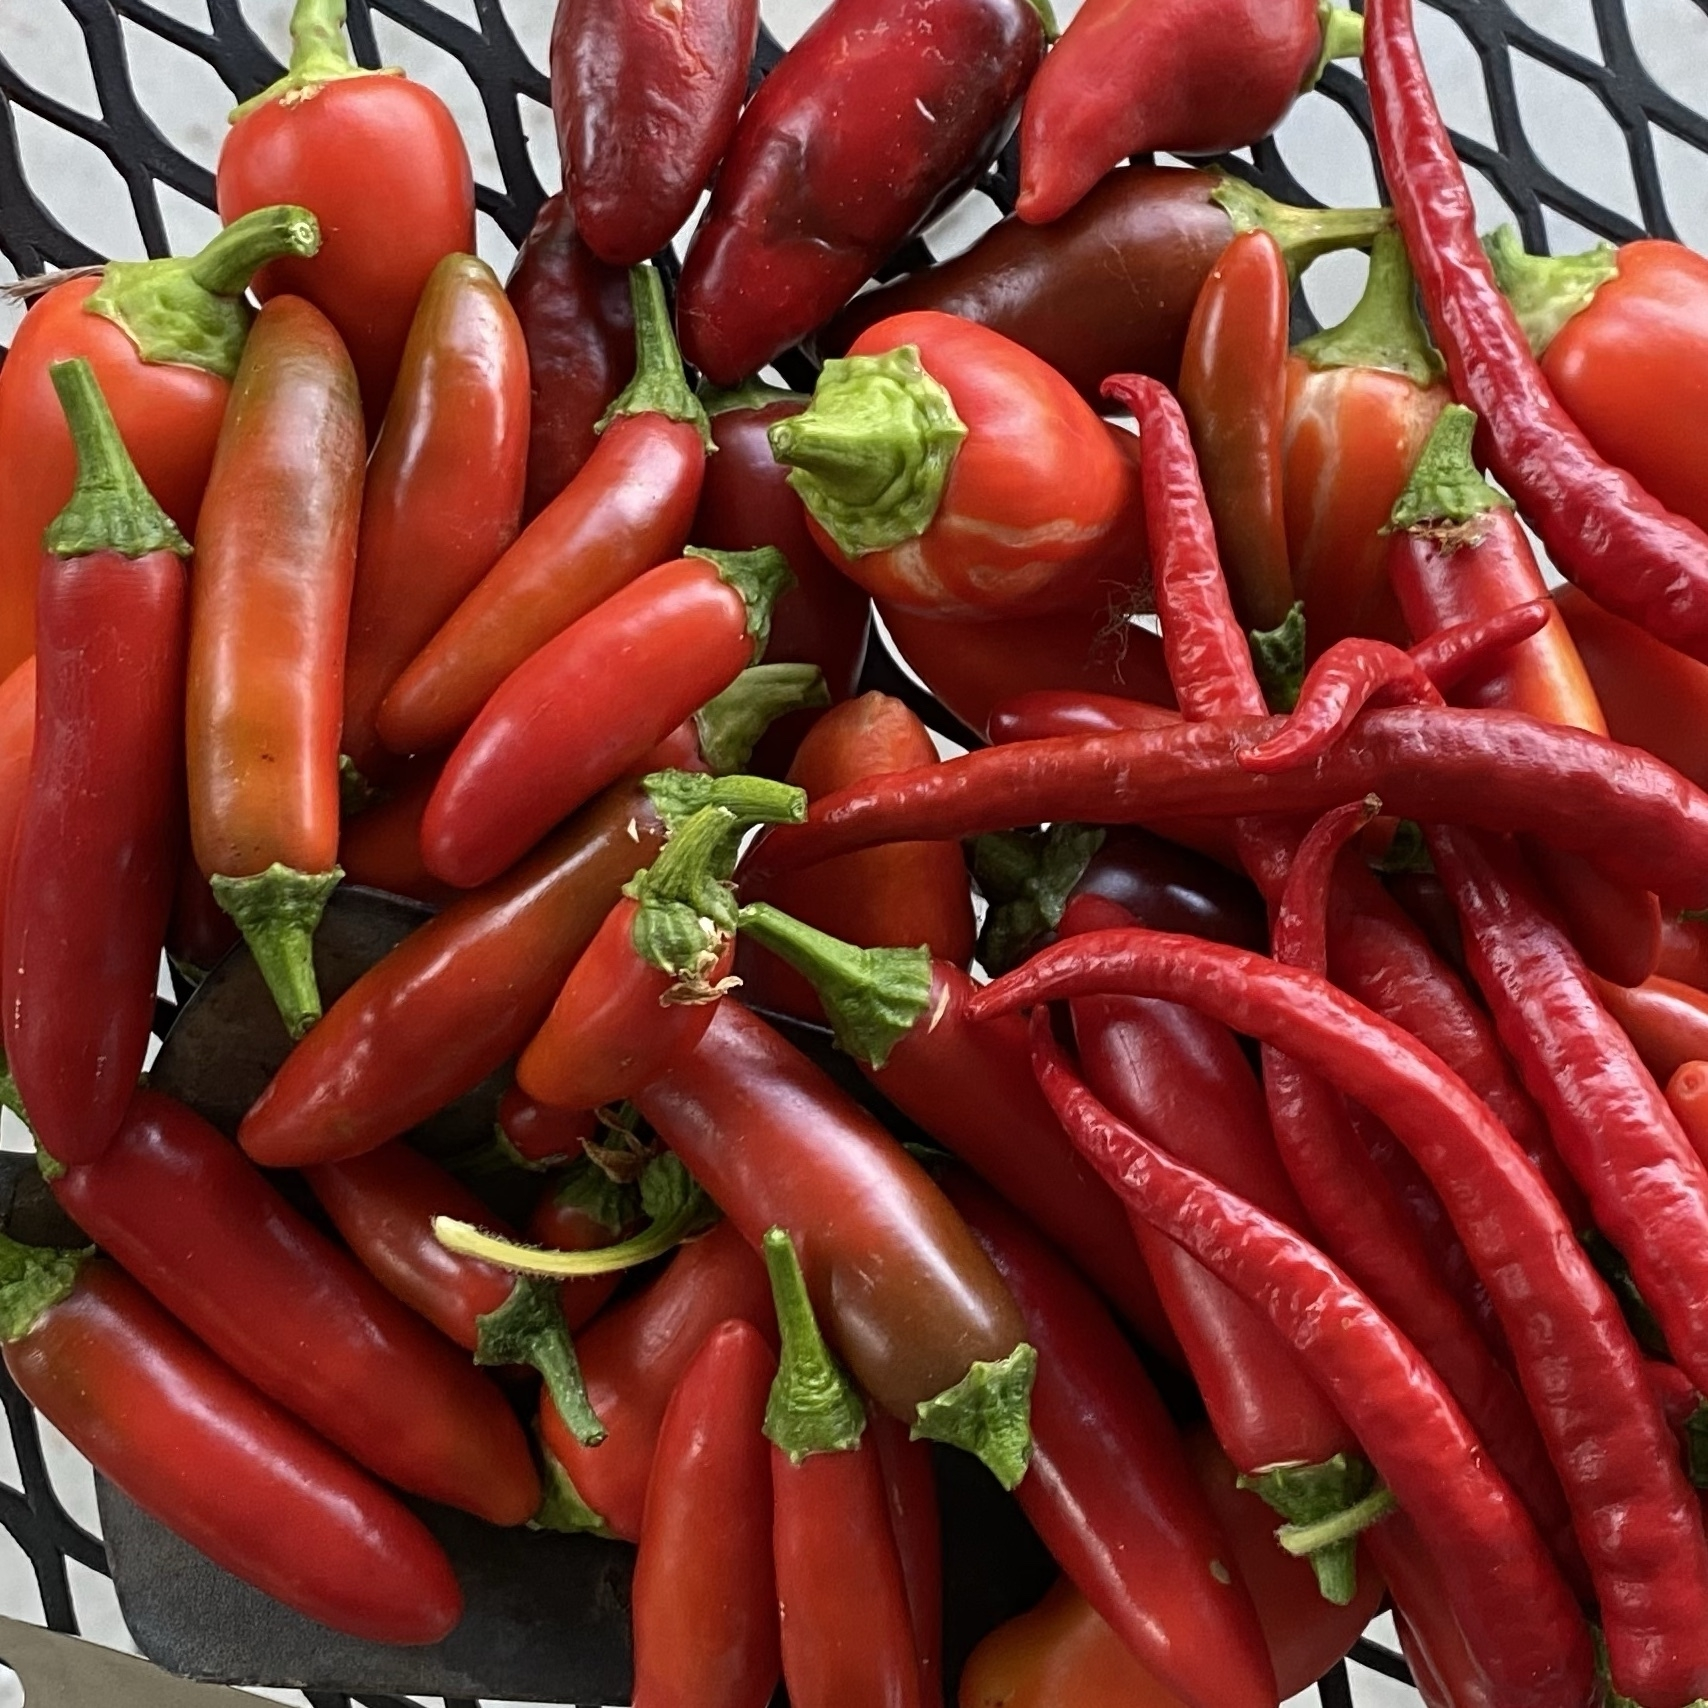 a pile of ripe peppers of various kinds